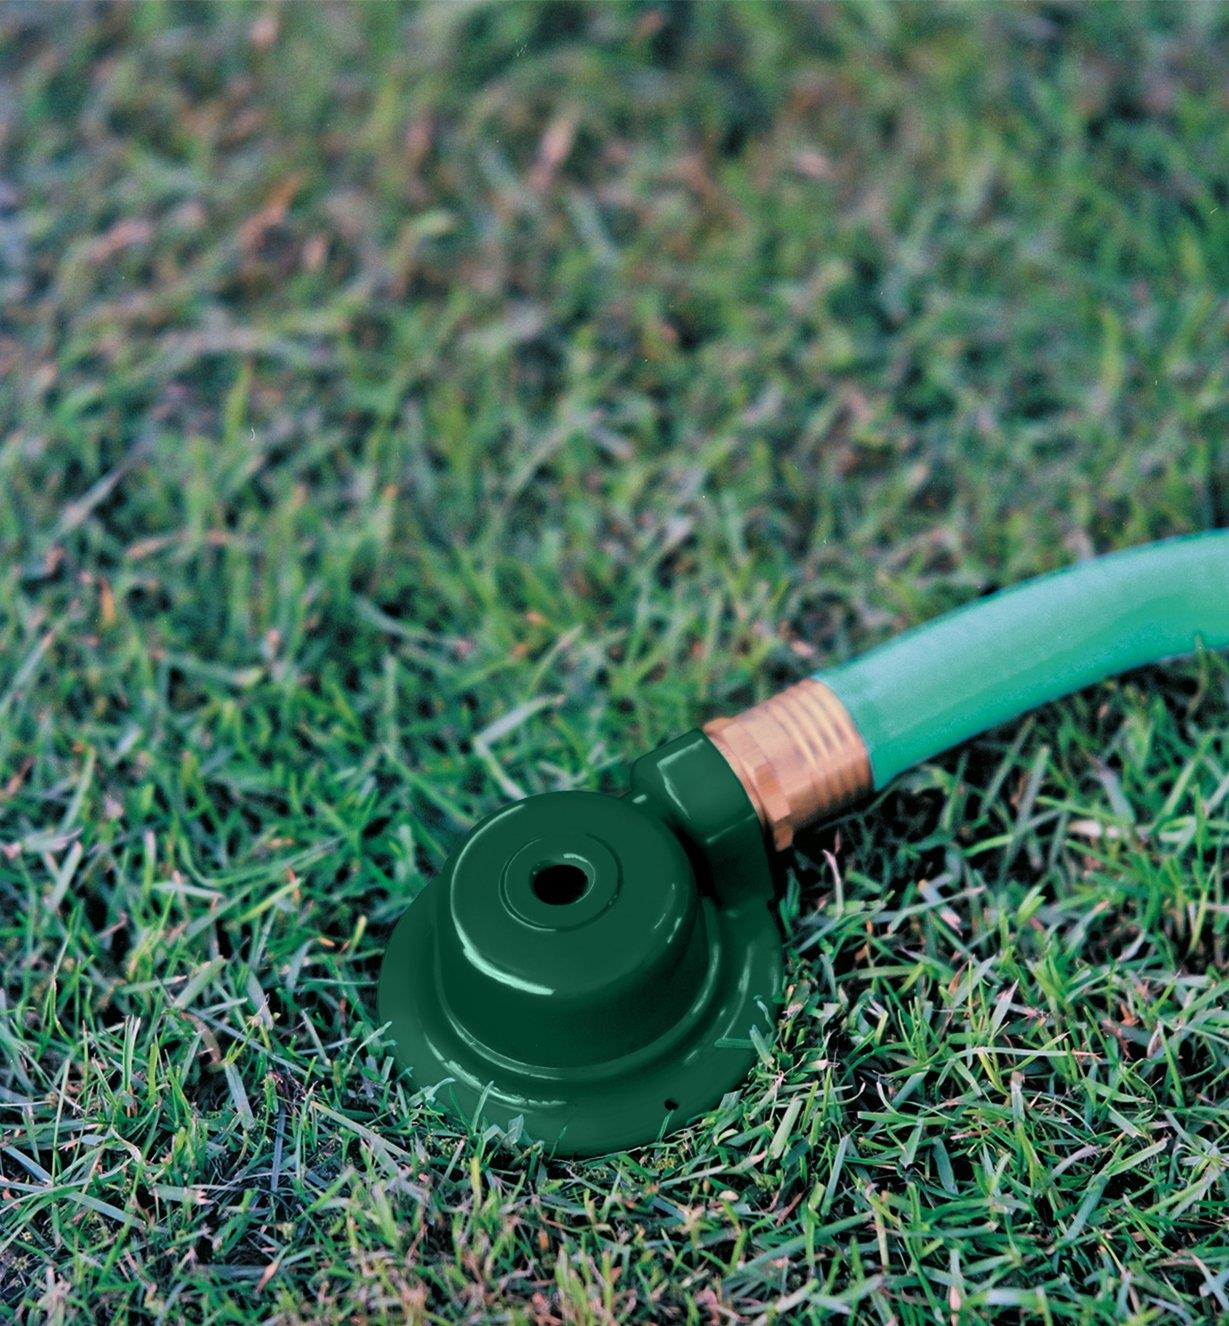 Spot Sprinkler connected to a garden hose